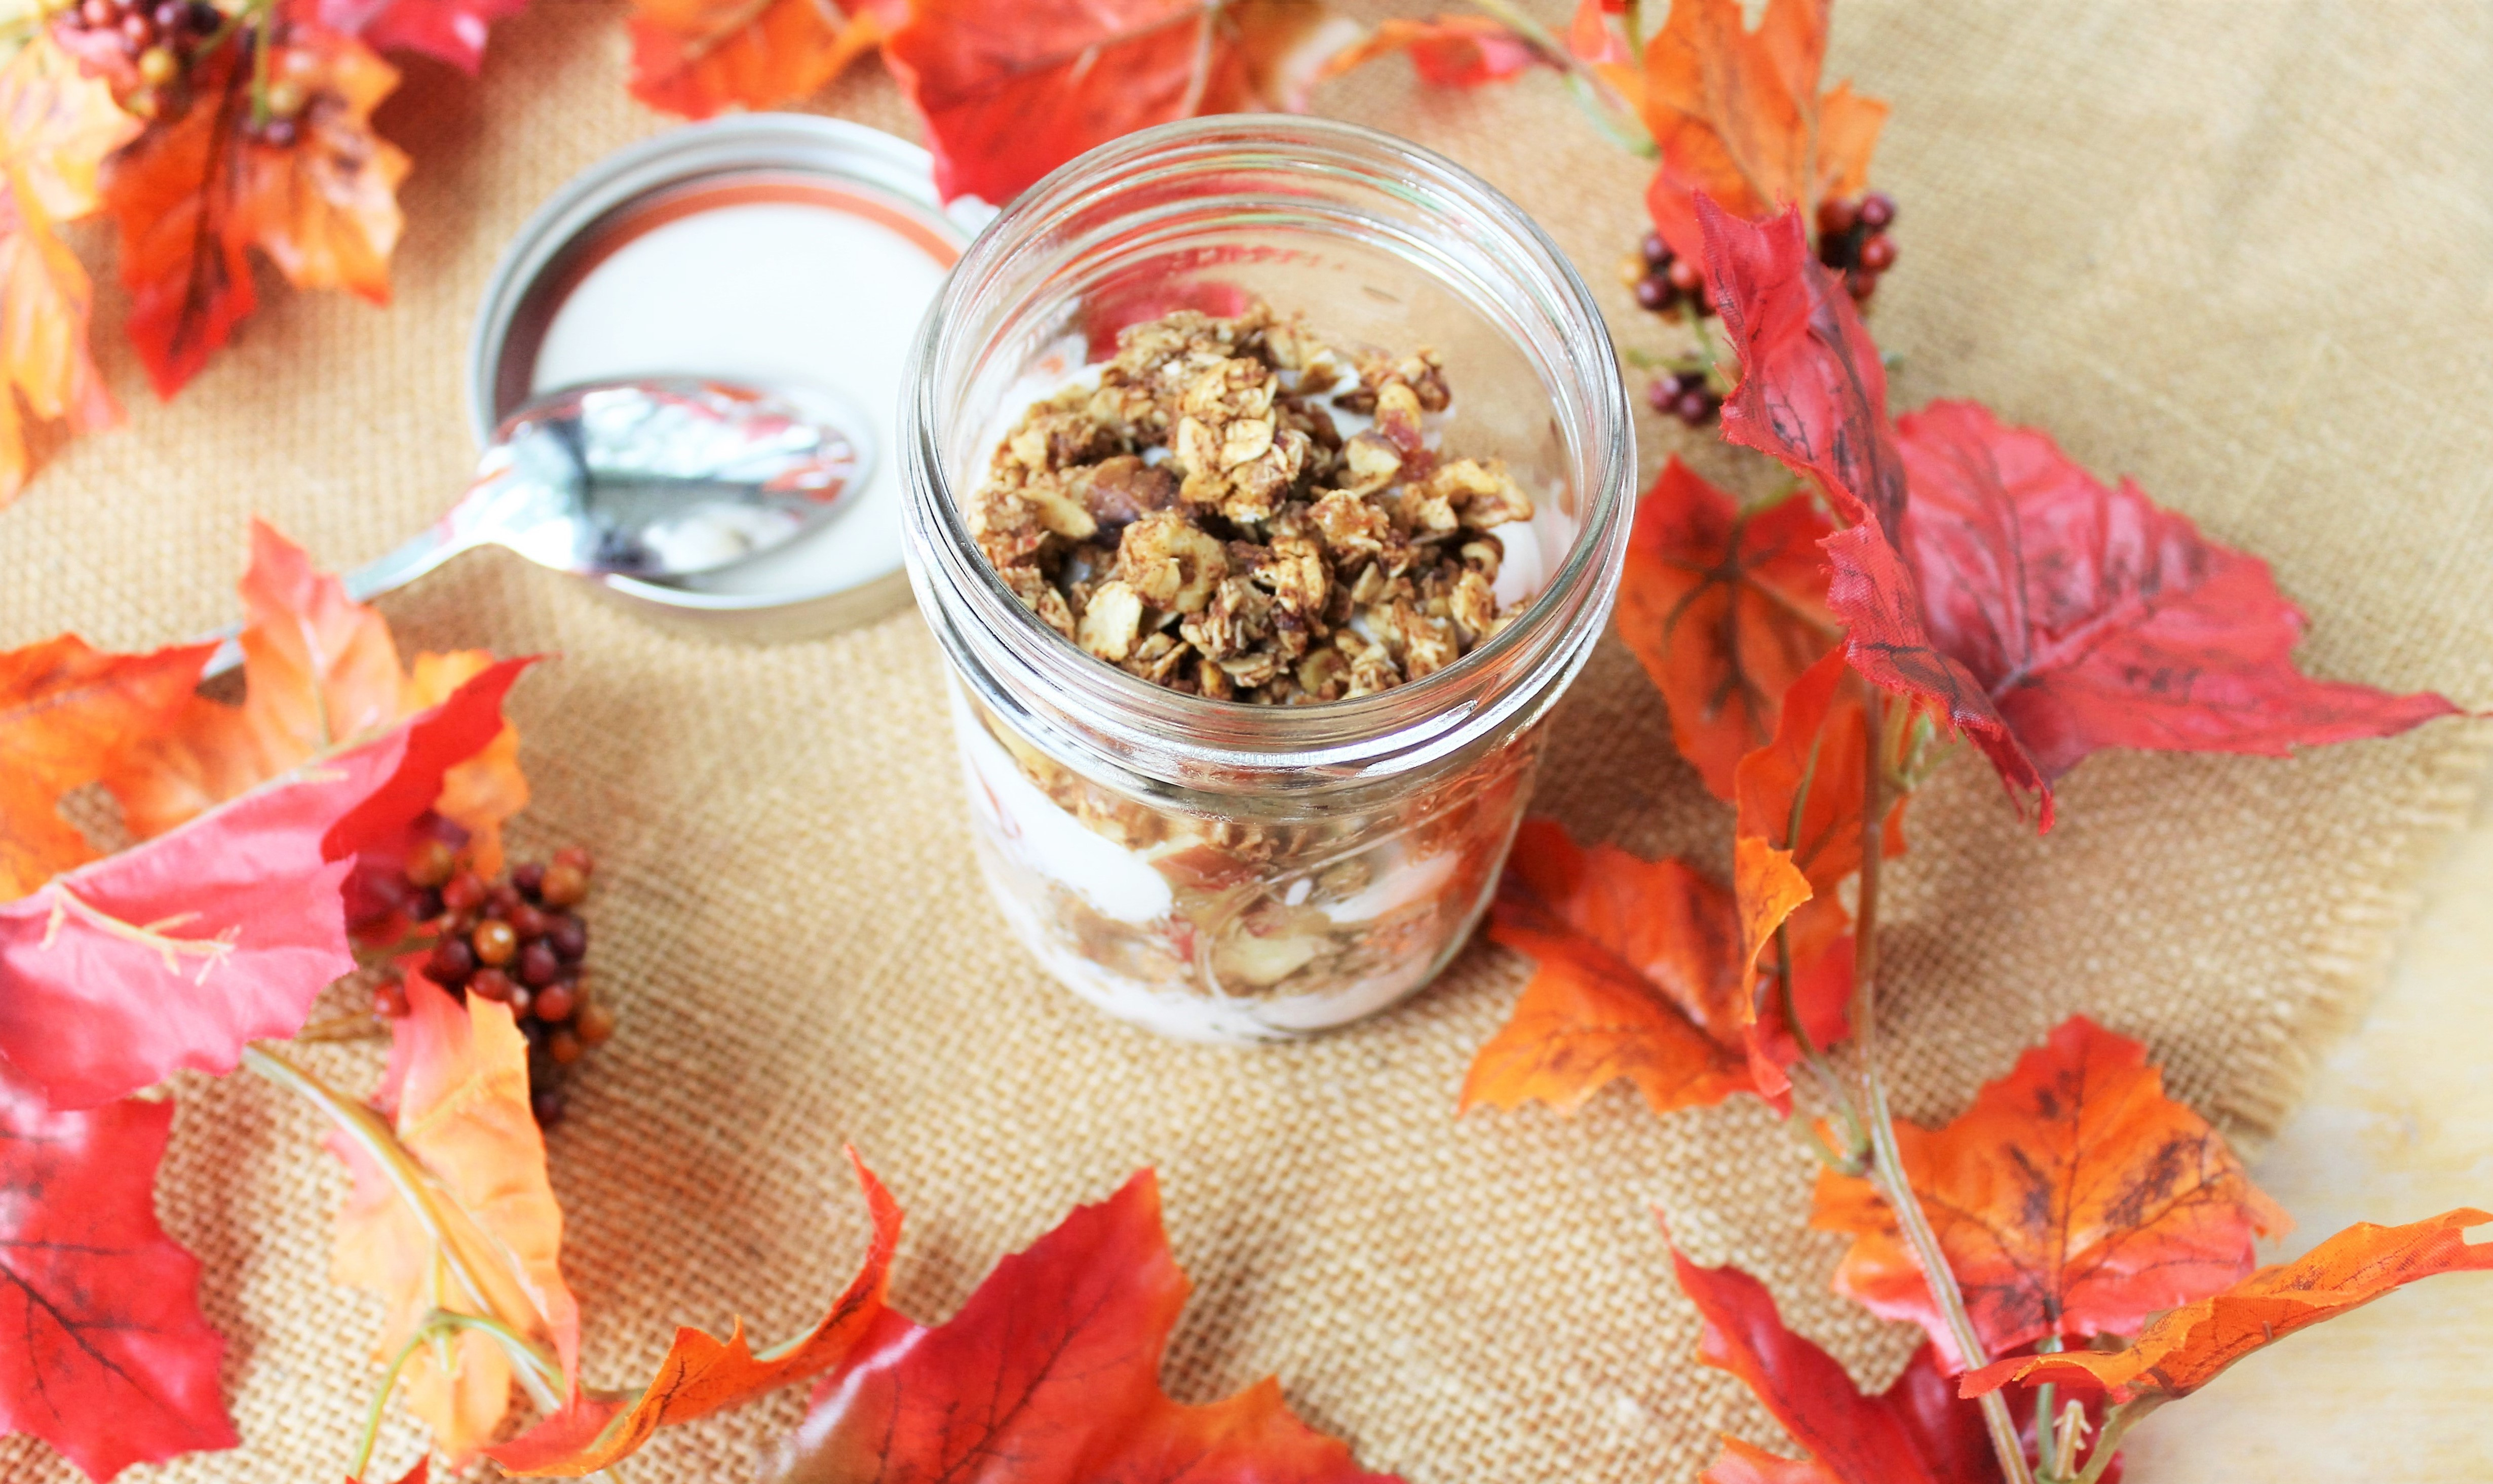 Yogurt Breakfast Parfait with Diced Apple and Homemade Cinnamon, Honey, and Walnut Granola 1